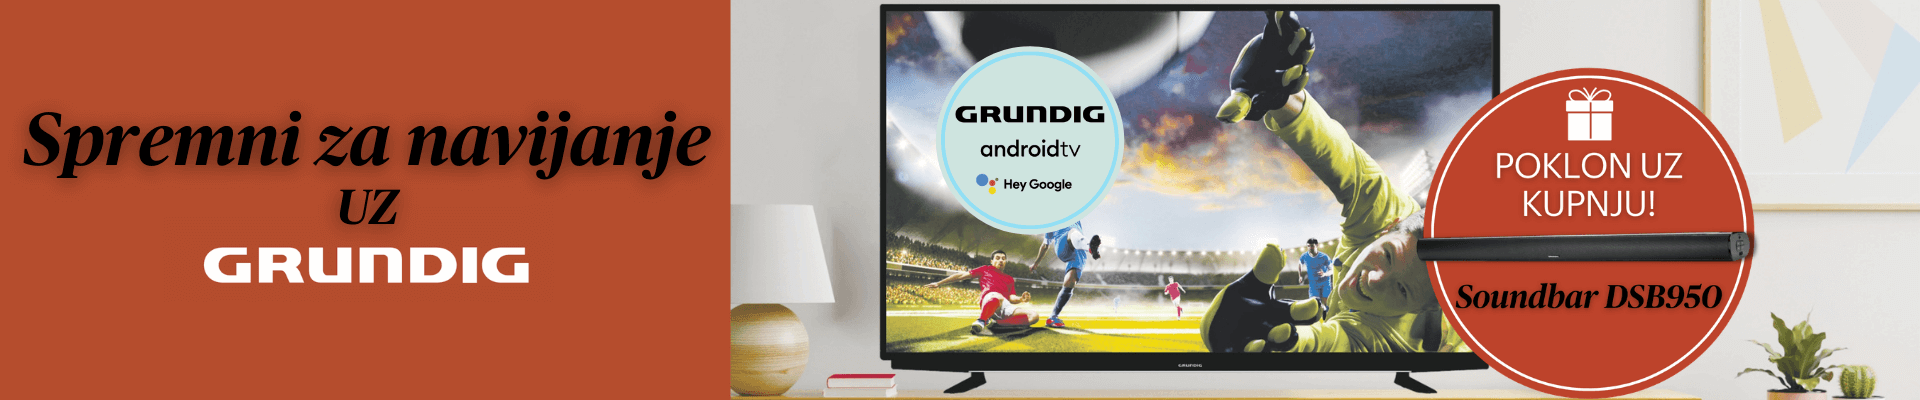 alles-grundig-android-tv-uhd-fhd-4k